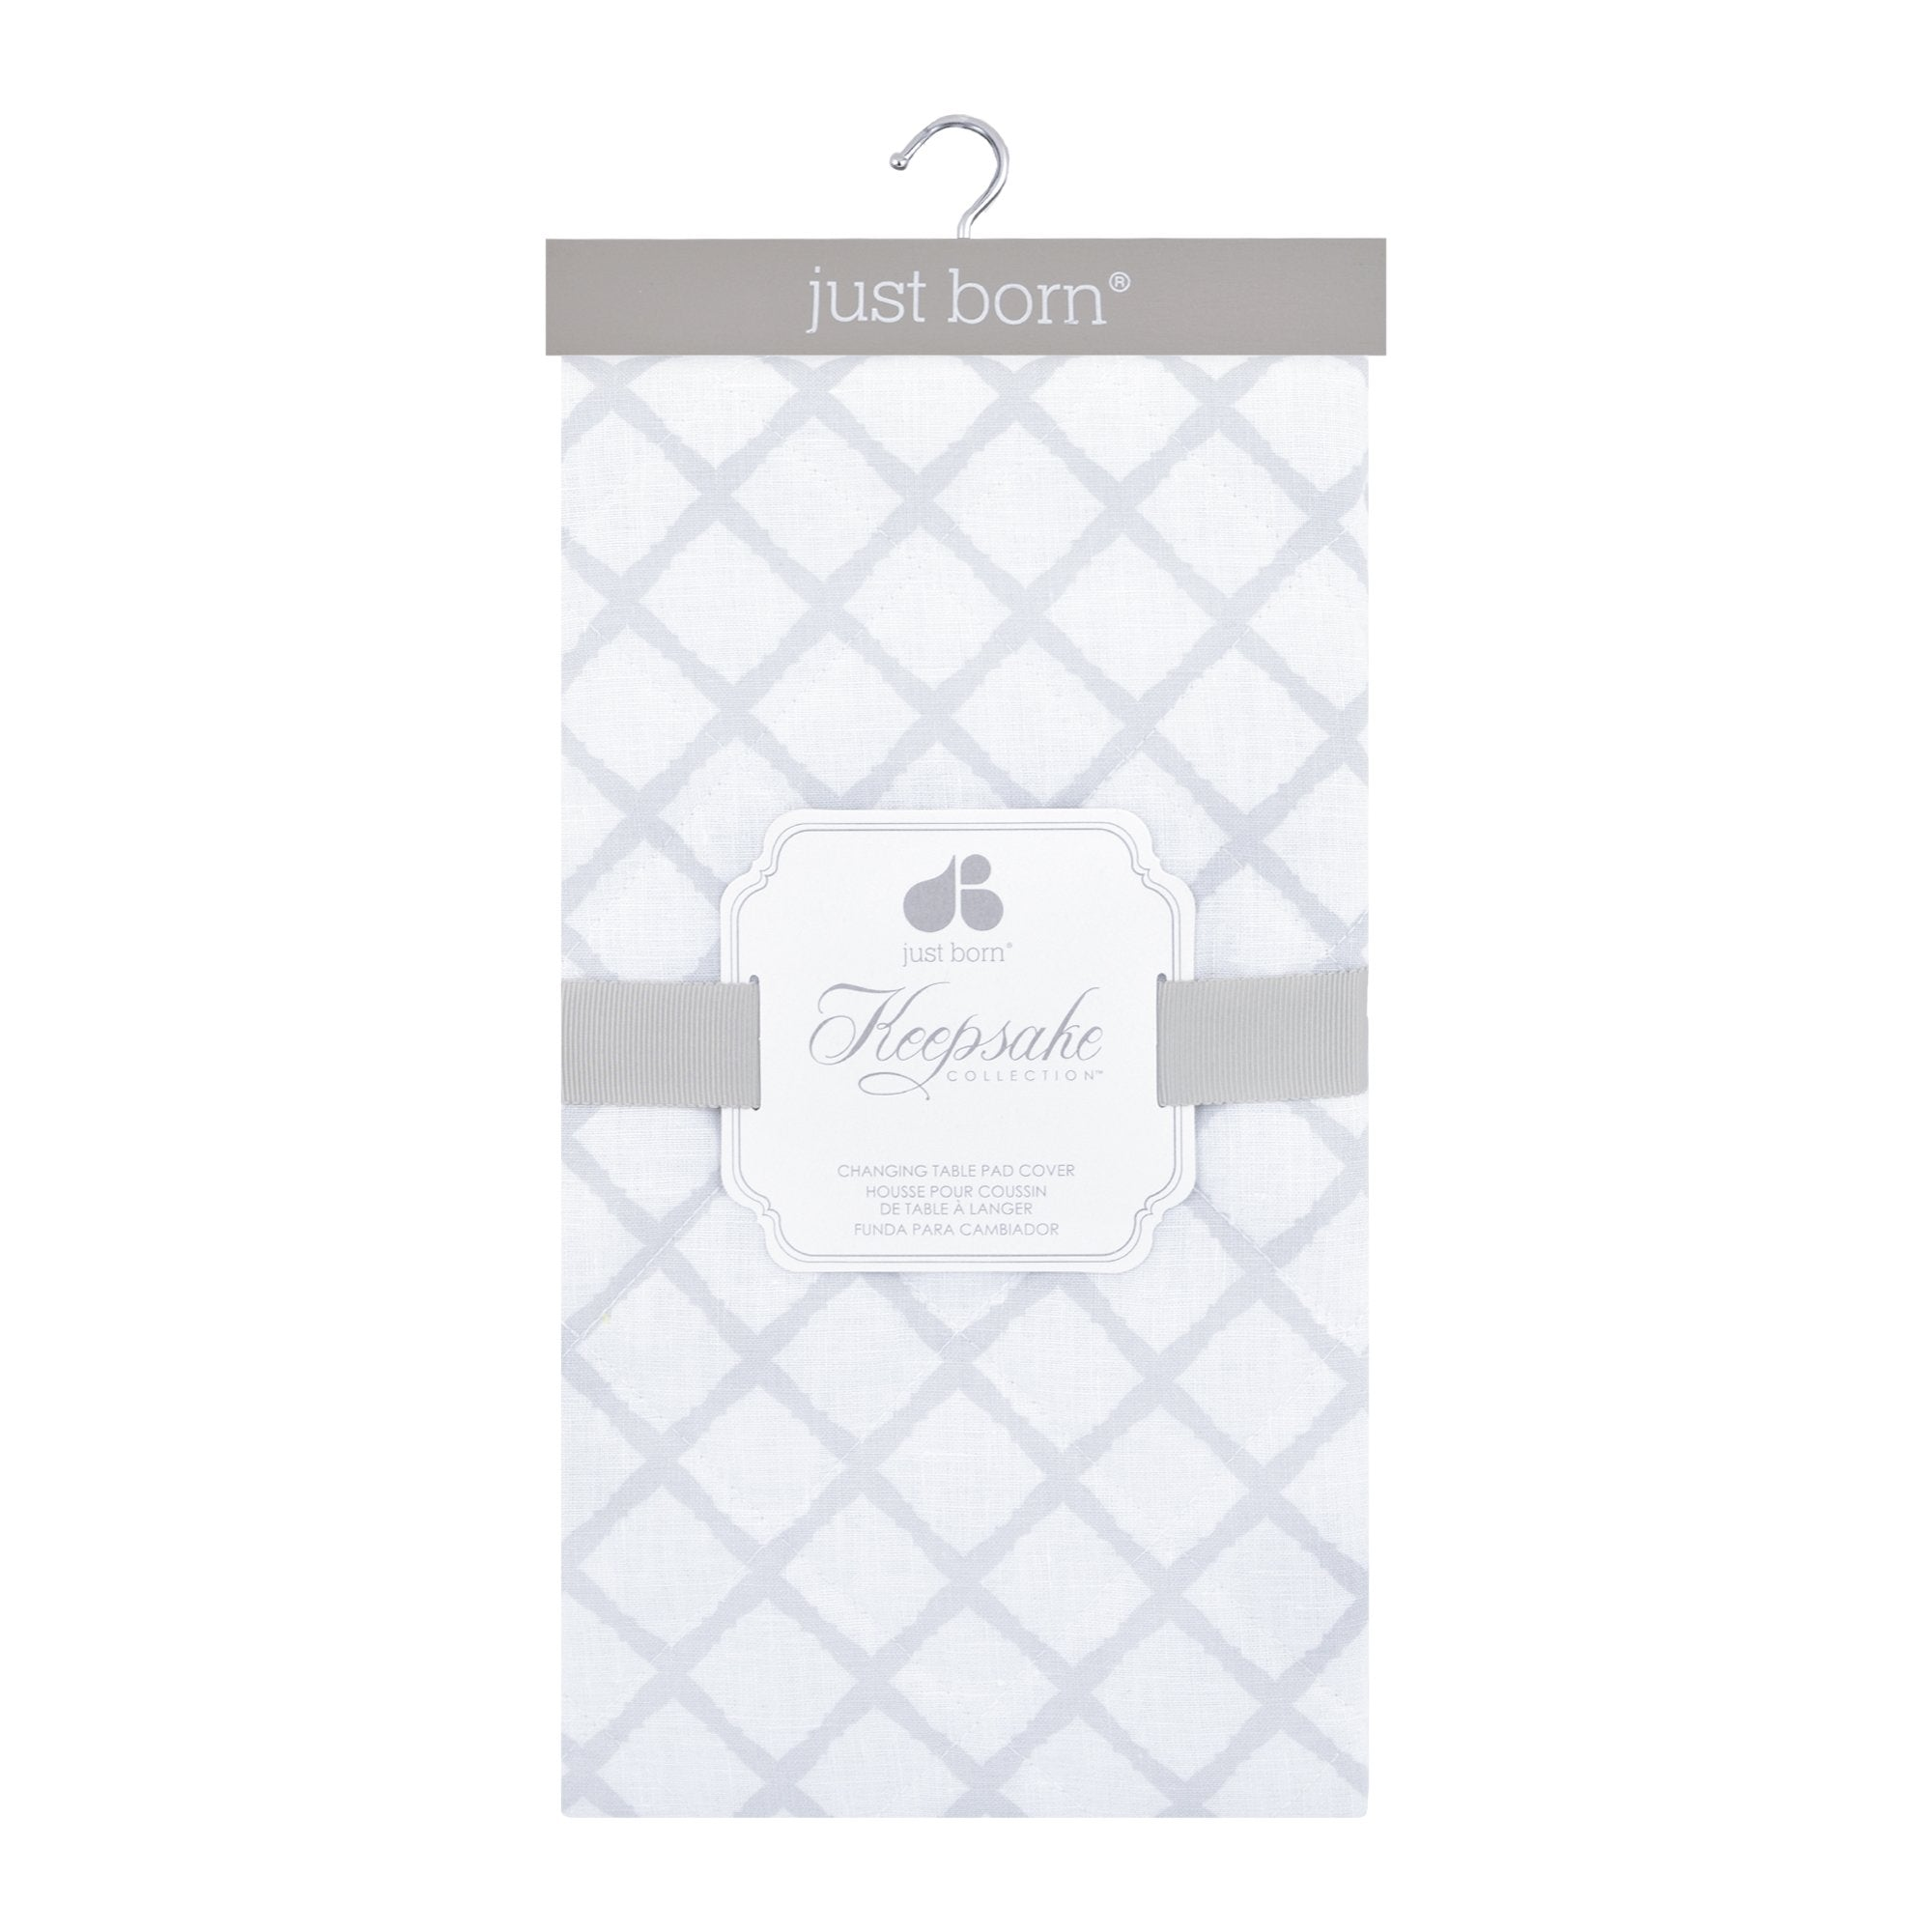 Just Born Keepsake Changing Pad Cover - Diamond Trellis-Gerber Childrenswear Wholesale